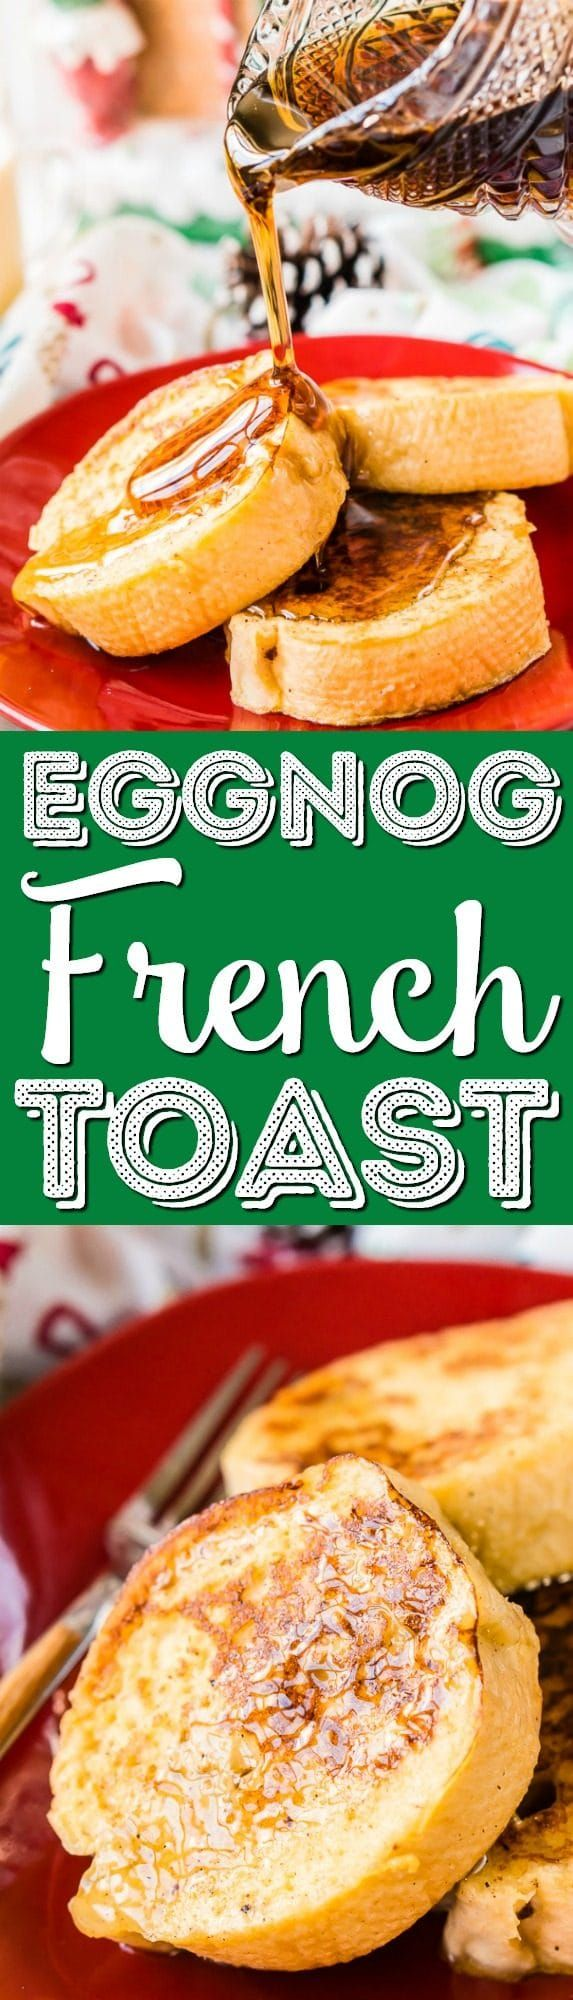 This Eggnog French Toast is dipped in a mixture of eggnog, eggs, rum, vanilla, and nutmeg before it's cooked to perfection for a delicious holiday breakfast!